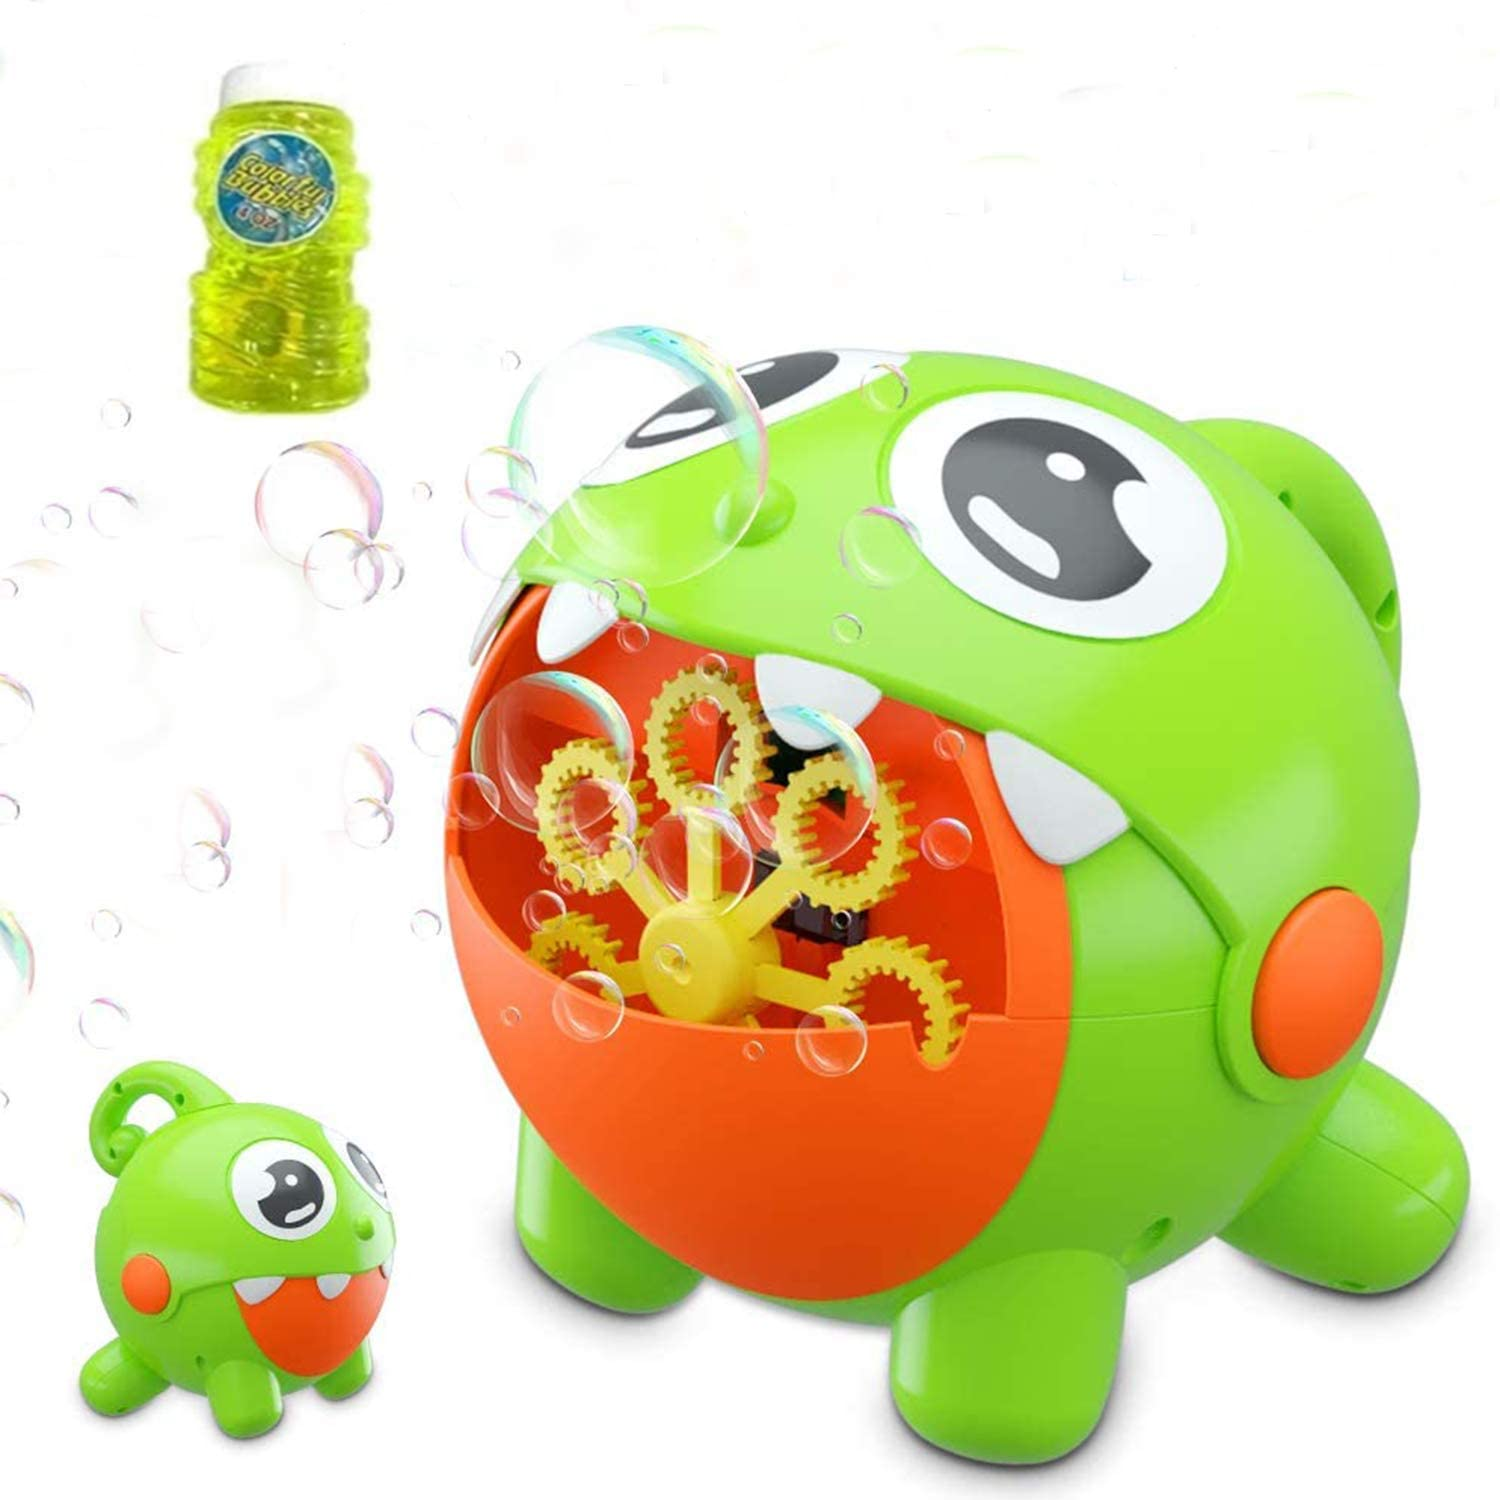 Aqiku Bubble Machine, Automatic Dinosaur Bubble Blower for Kids Toddler Built-in Rechargeable Battery Bubble Maker 3000 Bubbles Per Minute Bubble Toys for Boys Girls Party Birthday Wedding Baby Bath